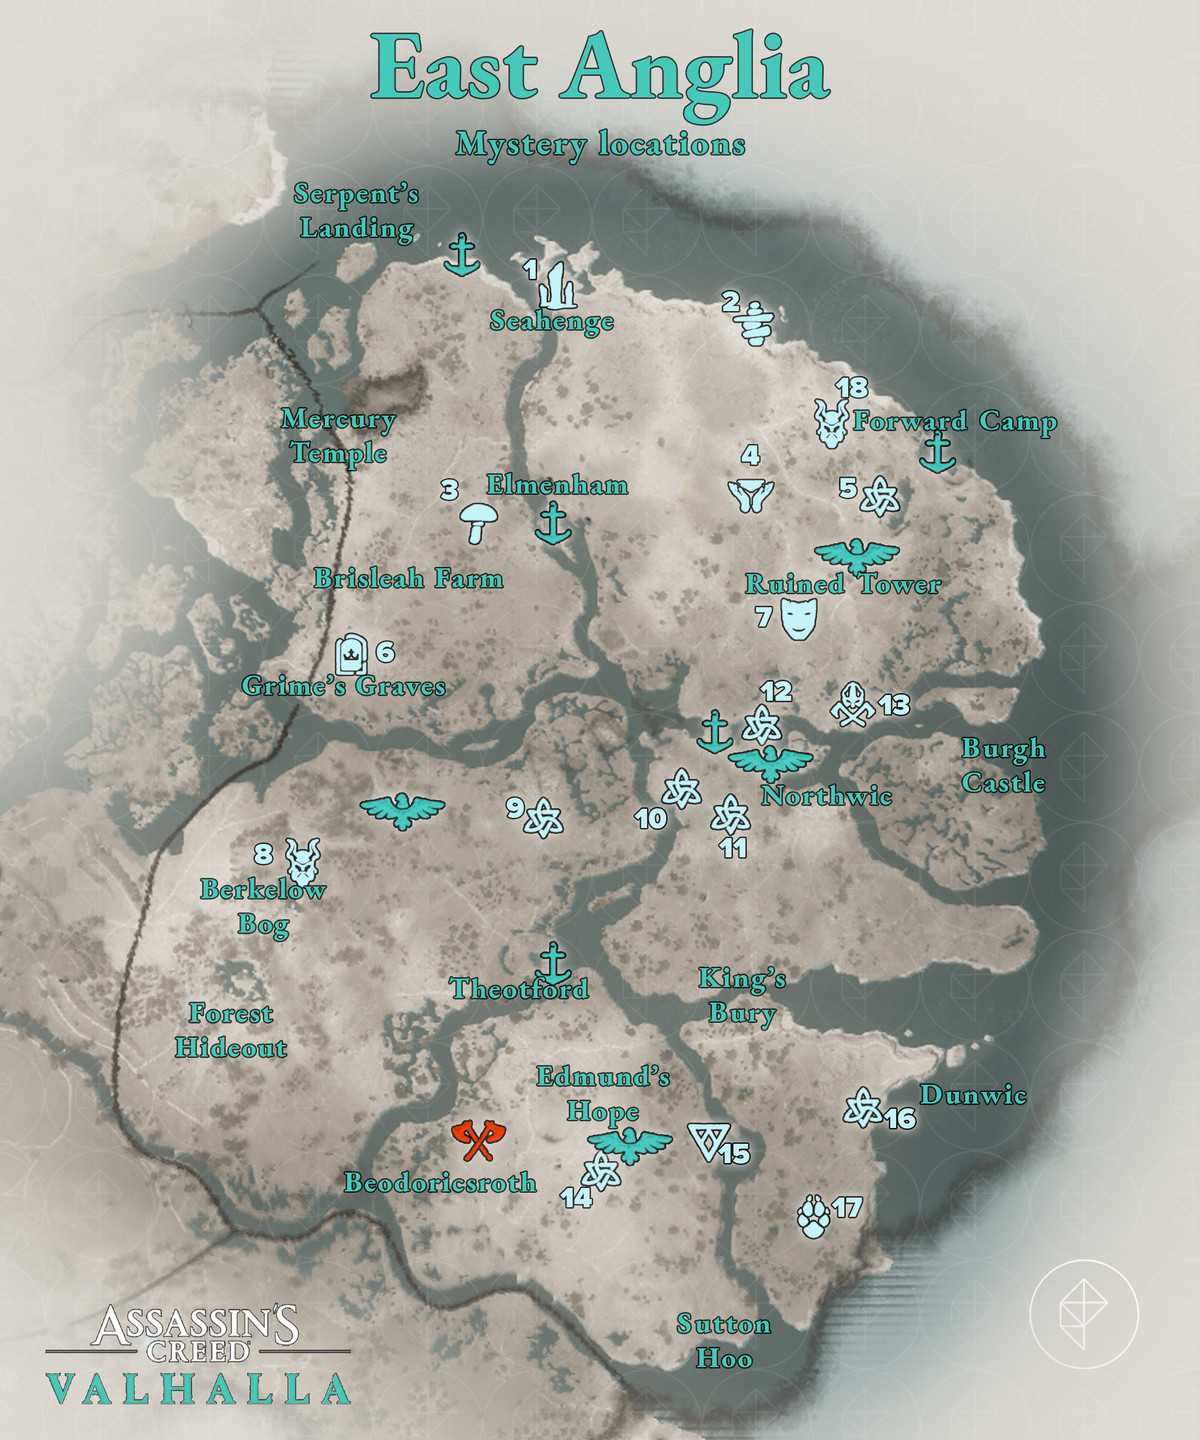 Assassin's Creed Valhalla East Anglia Mysteries locations map